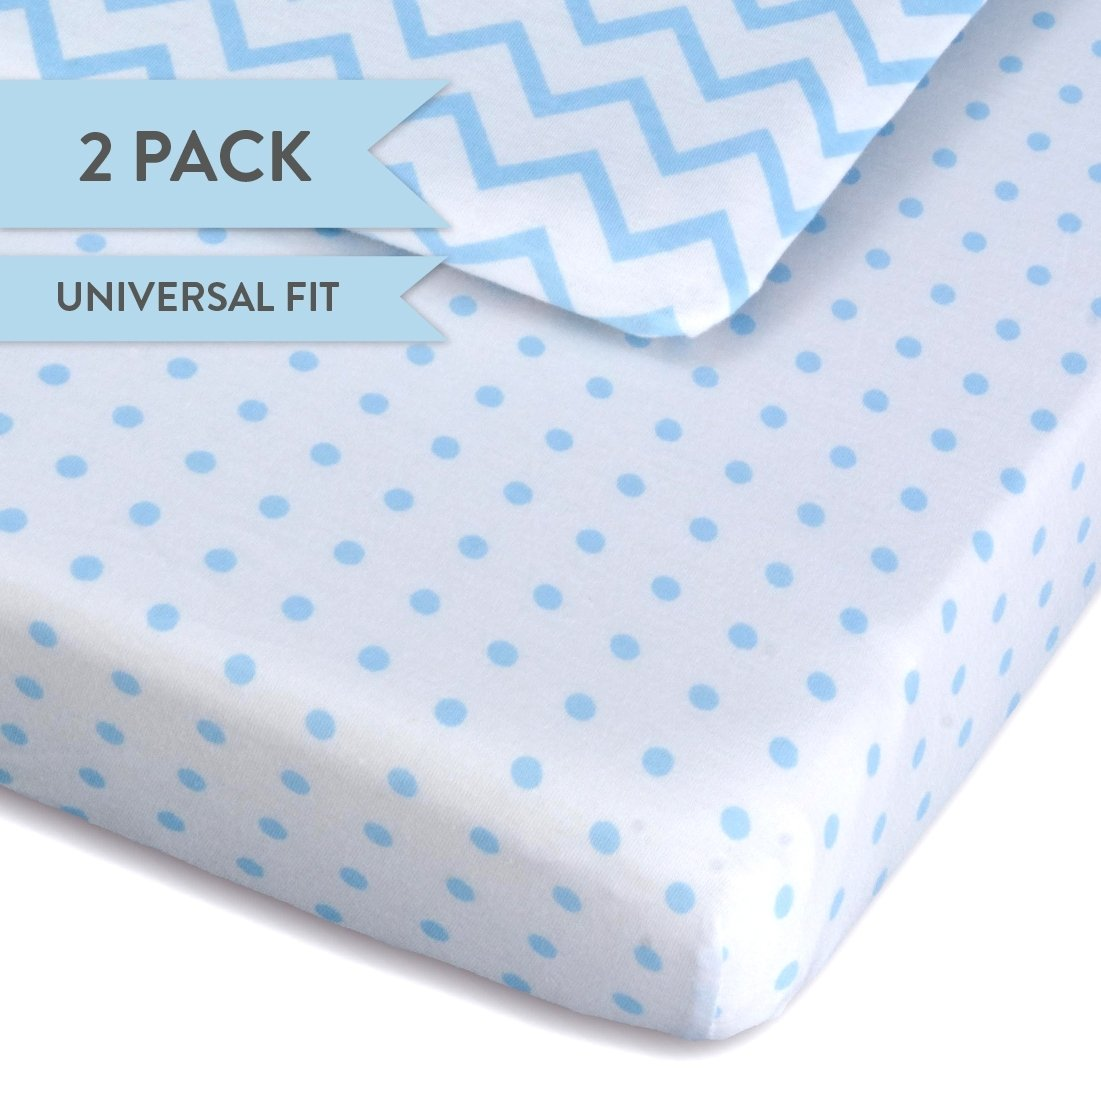 Pack N Play Portable Crib Sheet Set 100% Jersey Cotton 2 Pack - Light Blue Chevron and Polka Dots